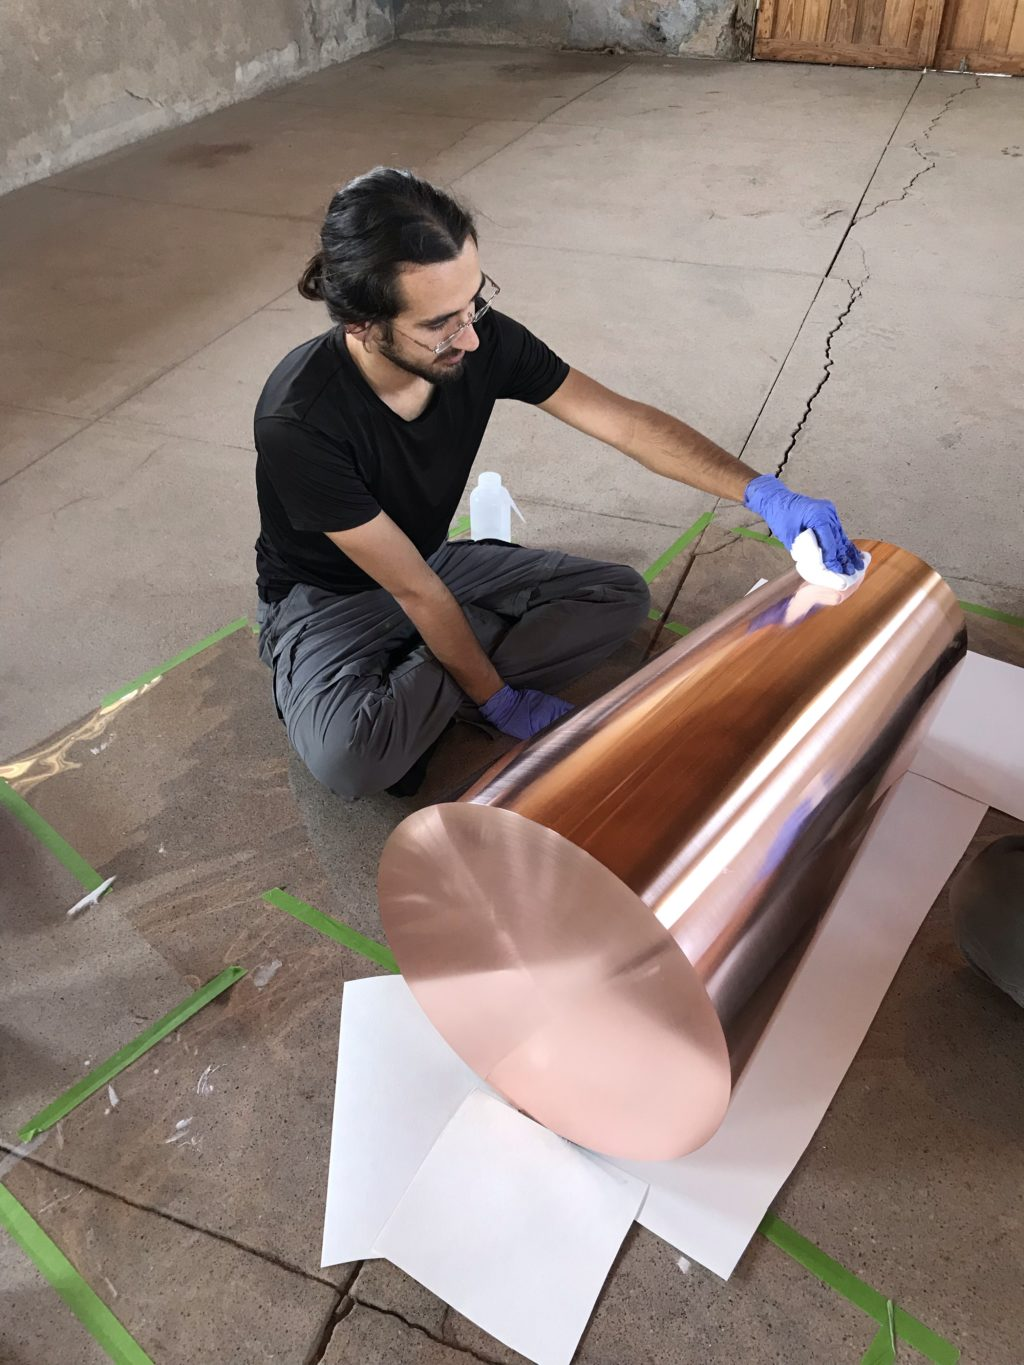 Conservation intern Christopher Gonzales cleans Horn sculpture